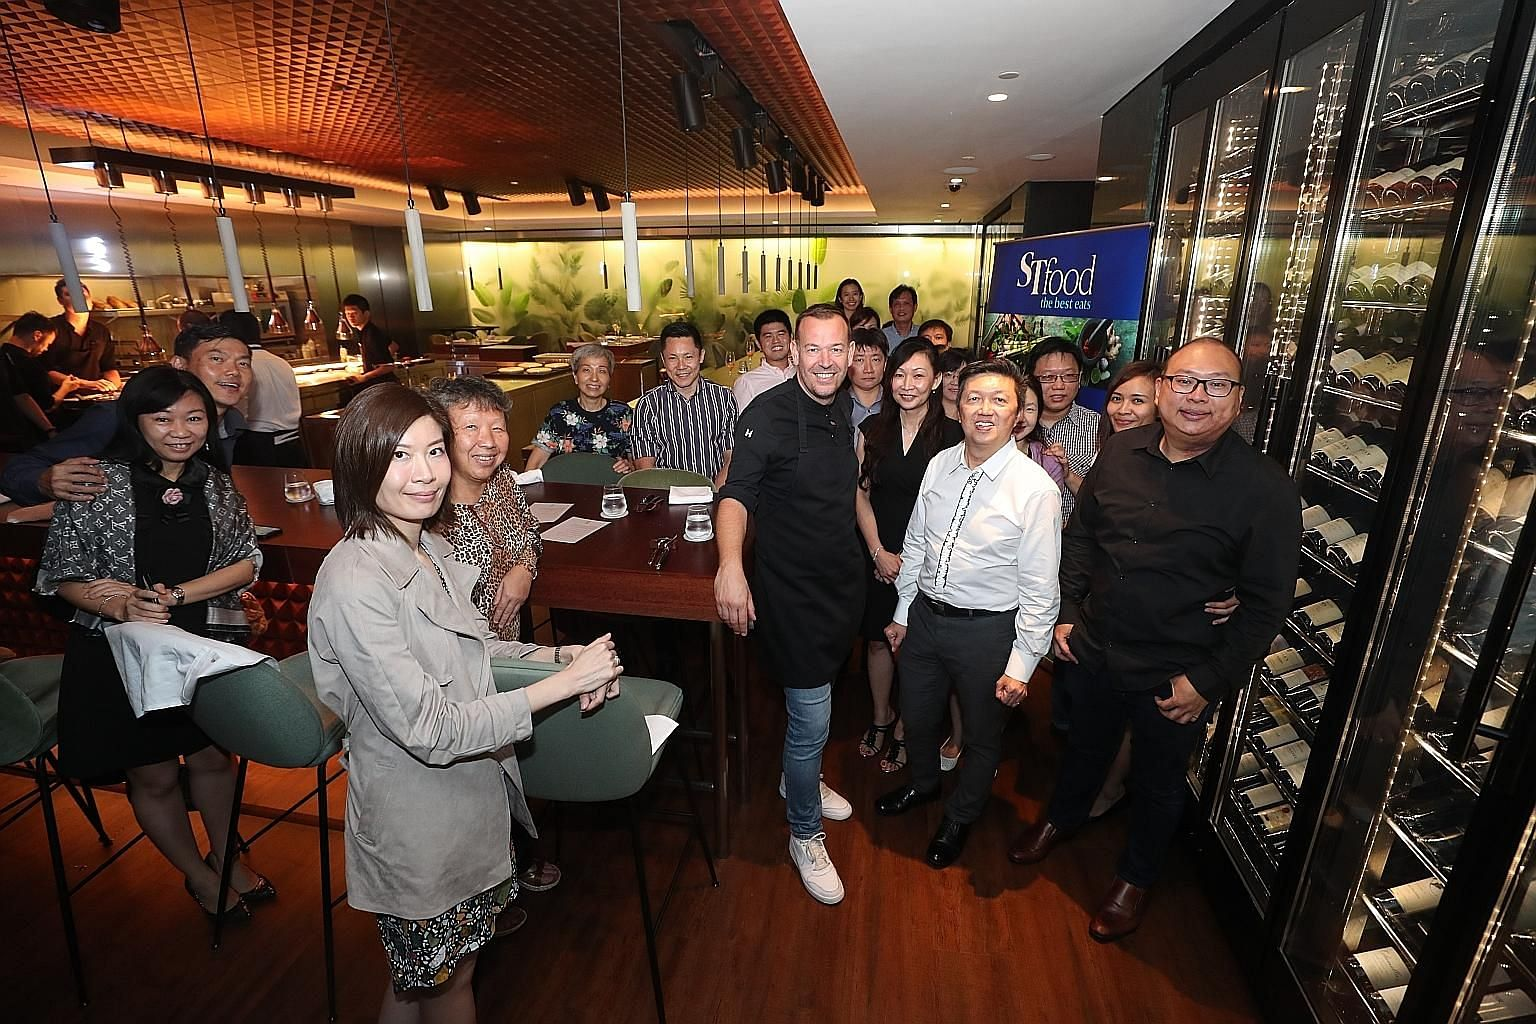 Hosted by The Straits Times senior food correspondent Wong Ah Yoke (fourth from right), the dinner was prepared by table65's celebrity chef Richard van Oostenbrugge (with apron).